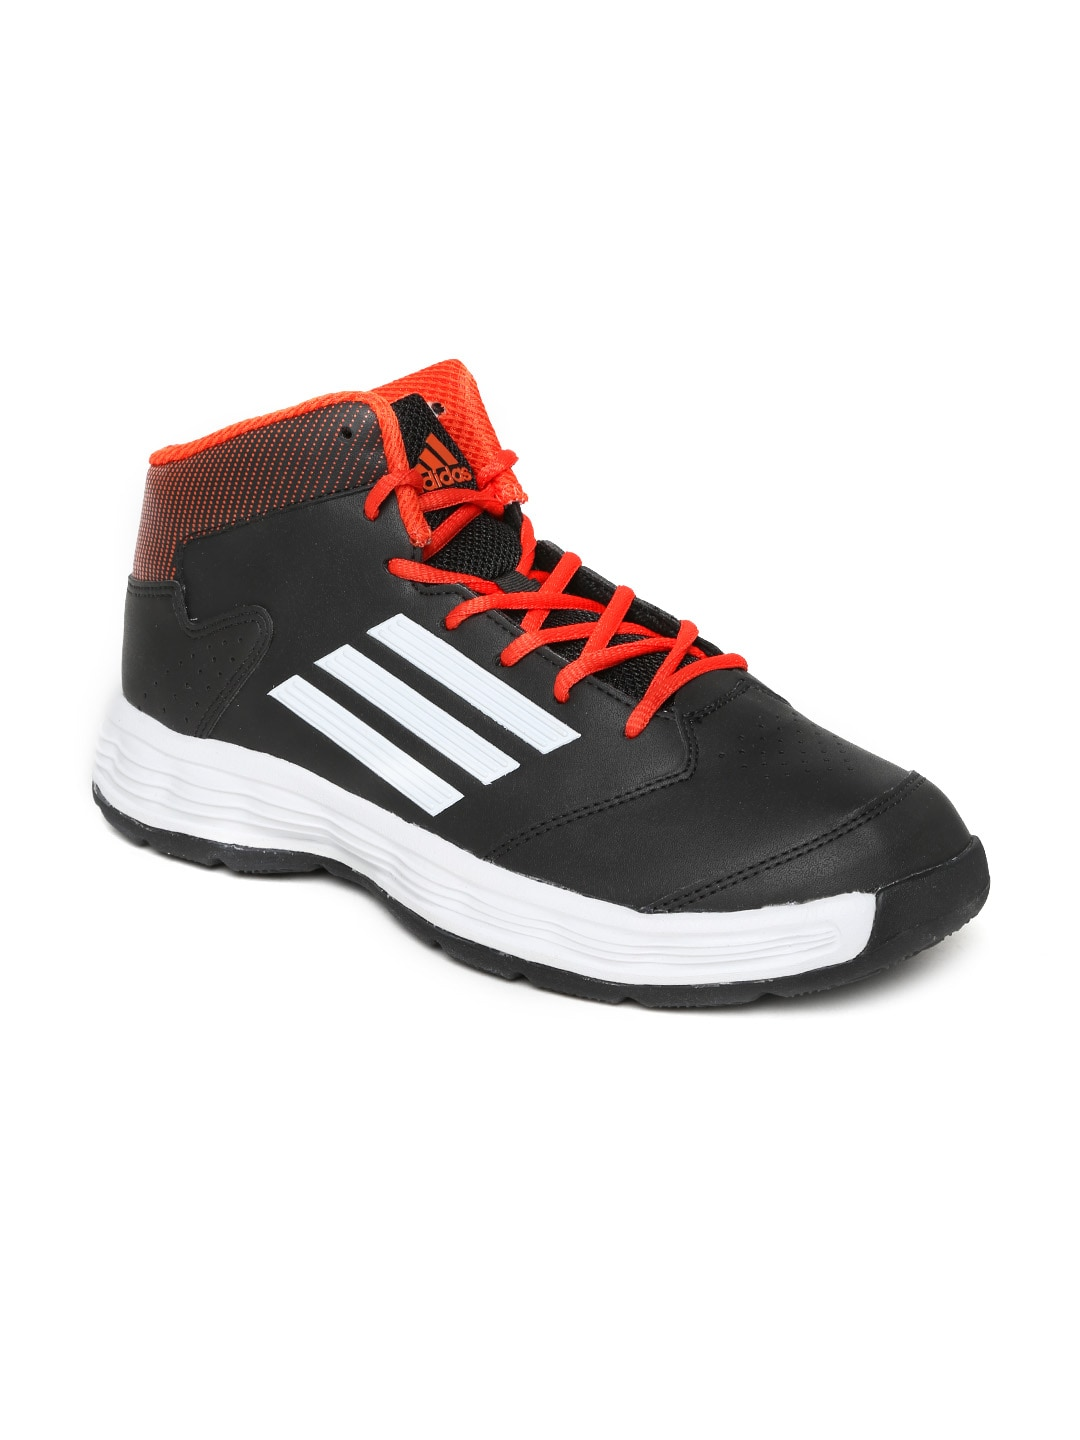 a28fd29b7a23e Adidas b08194 Men Black Shove Basketball Shoes - Best Price in ...